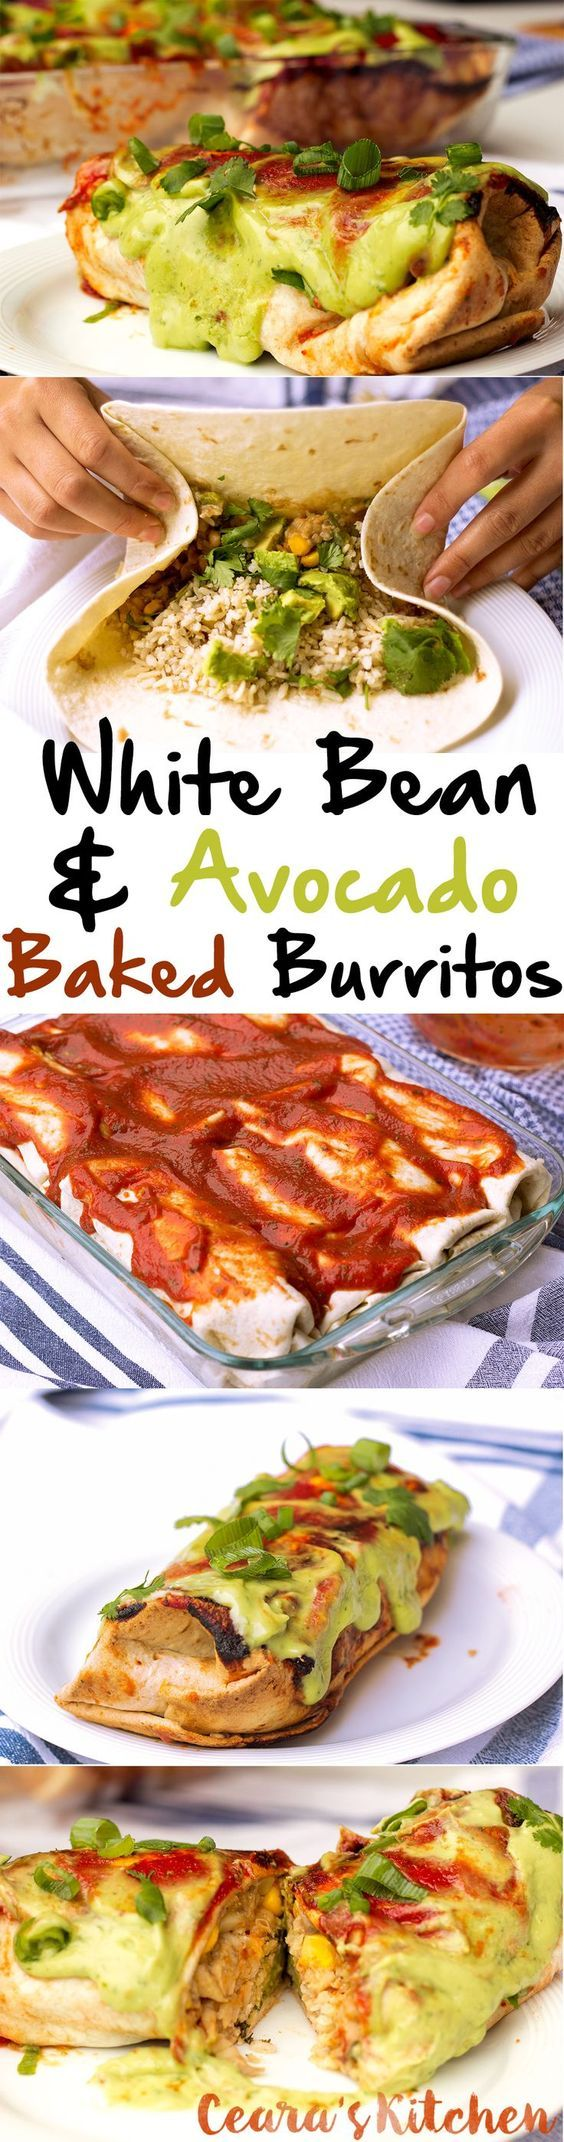 These White Bean and Avocado Baked Burritos make the perfect dinner - stuffed with white bean, mushrooms, corn + lots of avocado!: